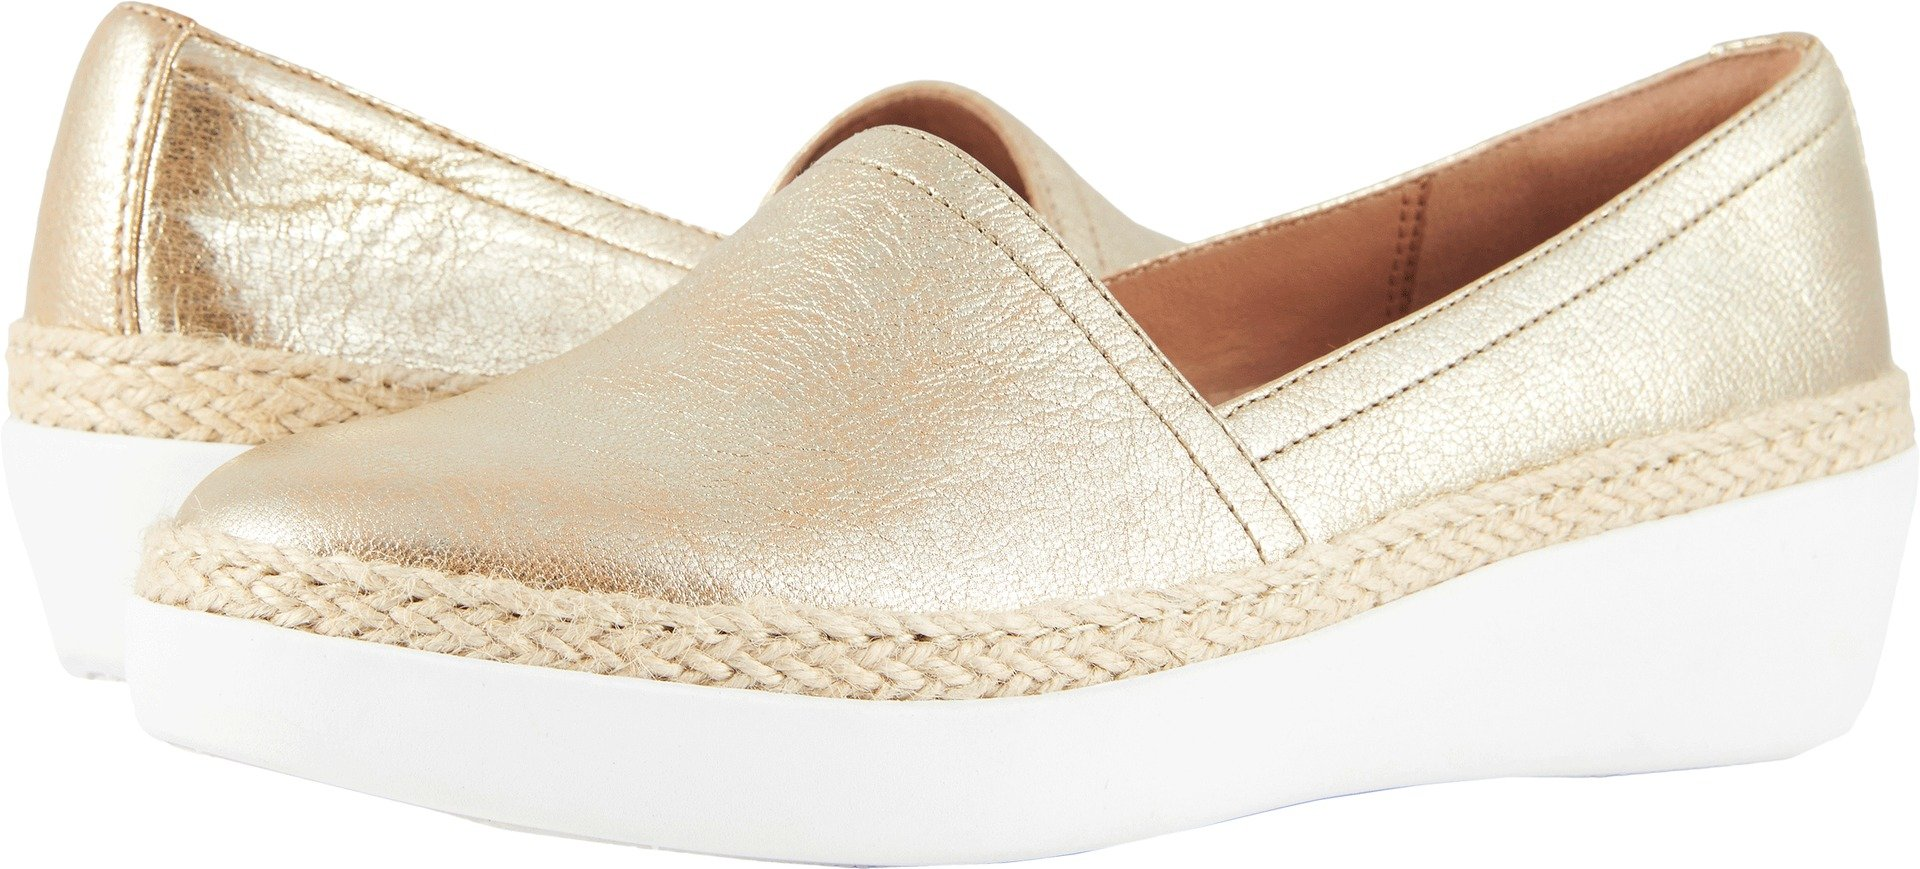 FitFlop Women's CASA Loafers Metallic Gold 8.5 M US